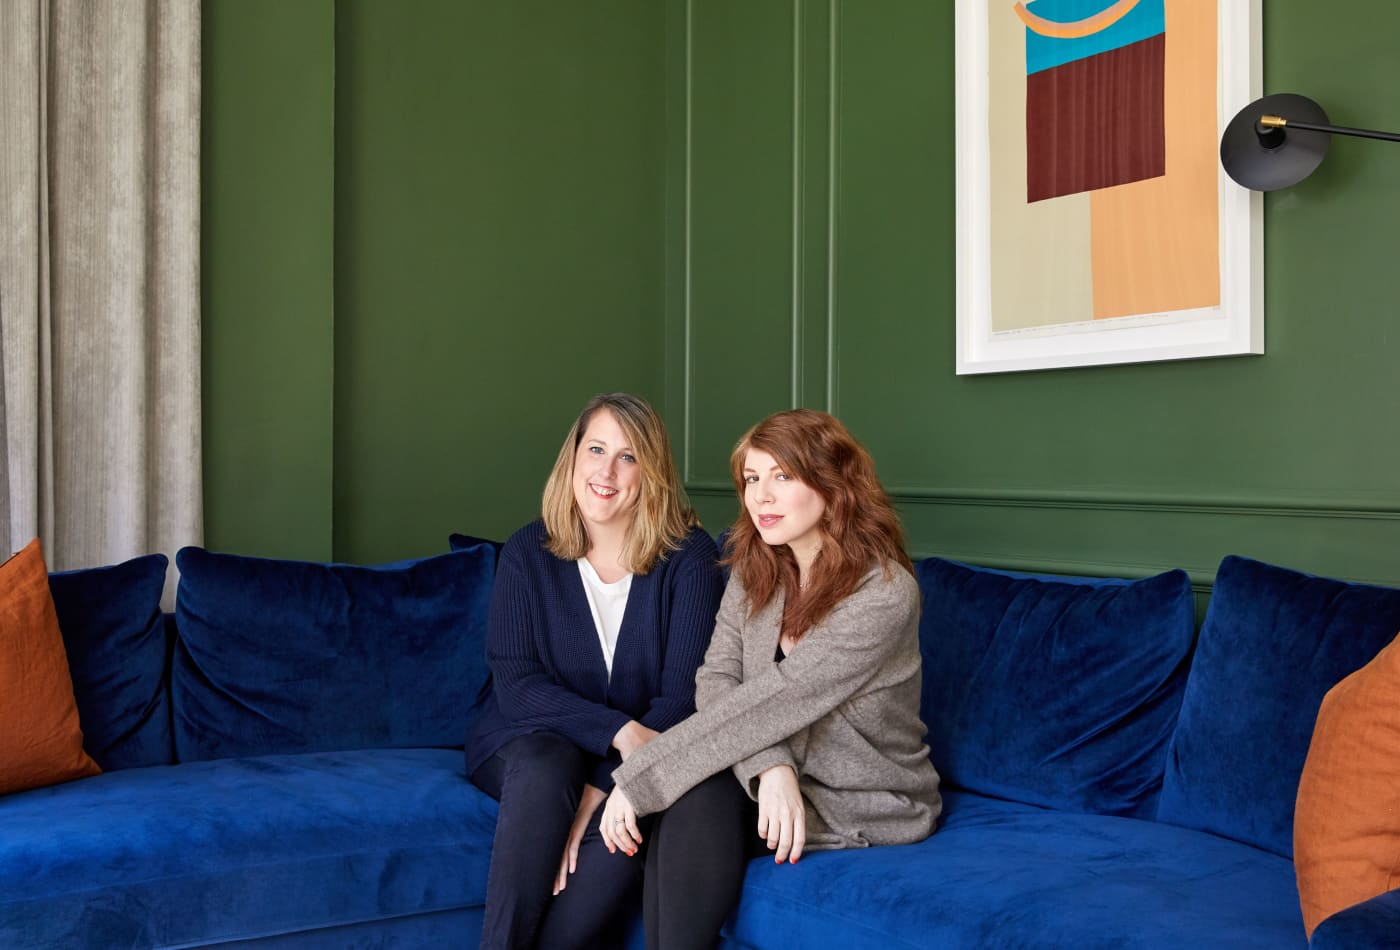 How the founders of Chief, a private network for C-suite women, are expanding amid the pandemic